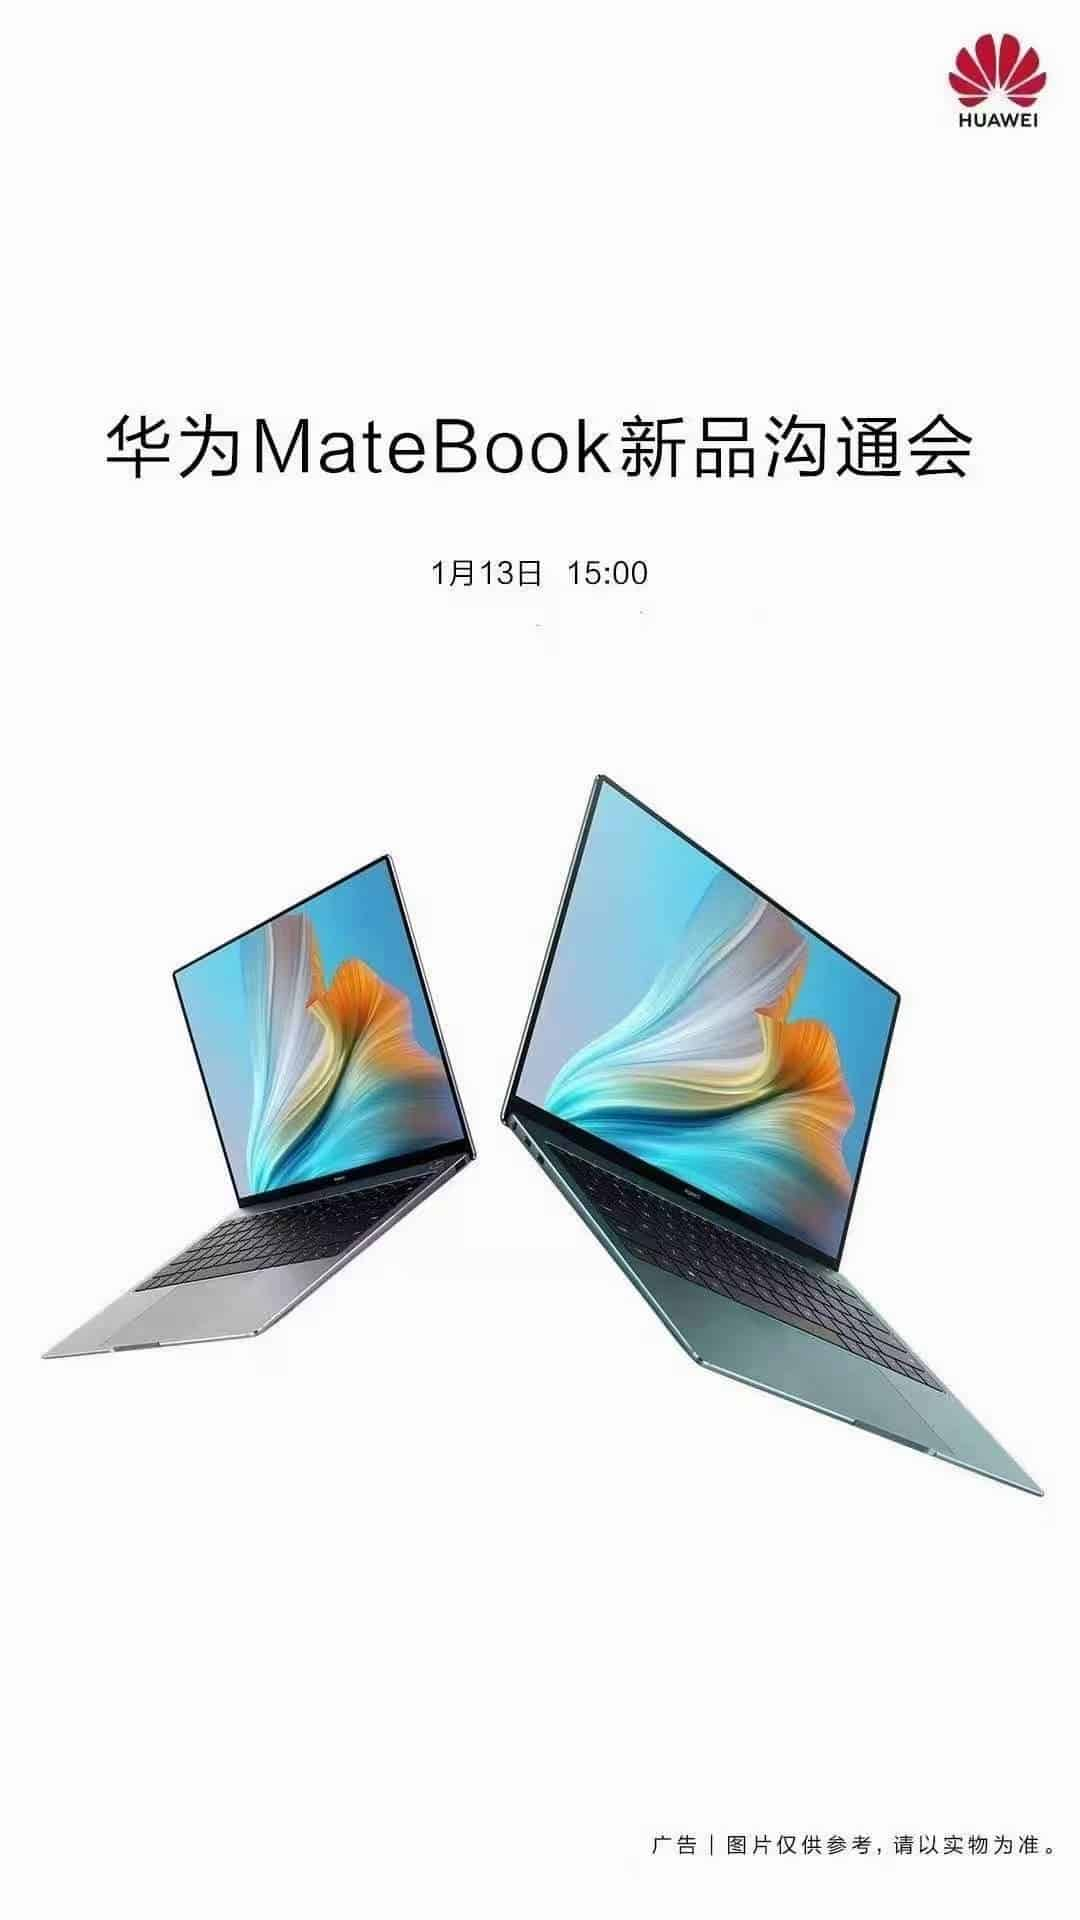 Huawei launches MateBook X Pro 2021: equipped with Intel's latest i7-1160G7 processor